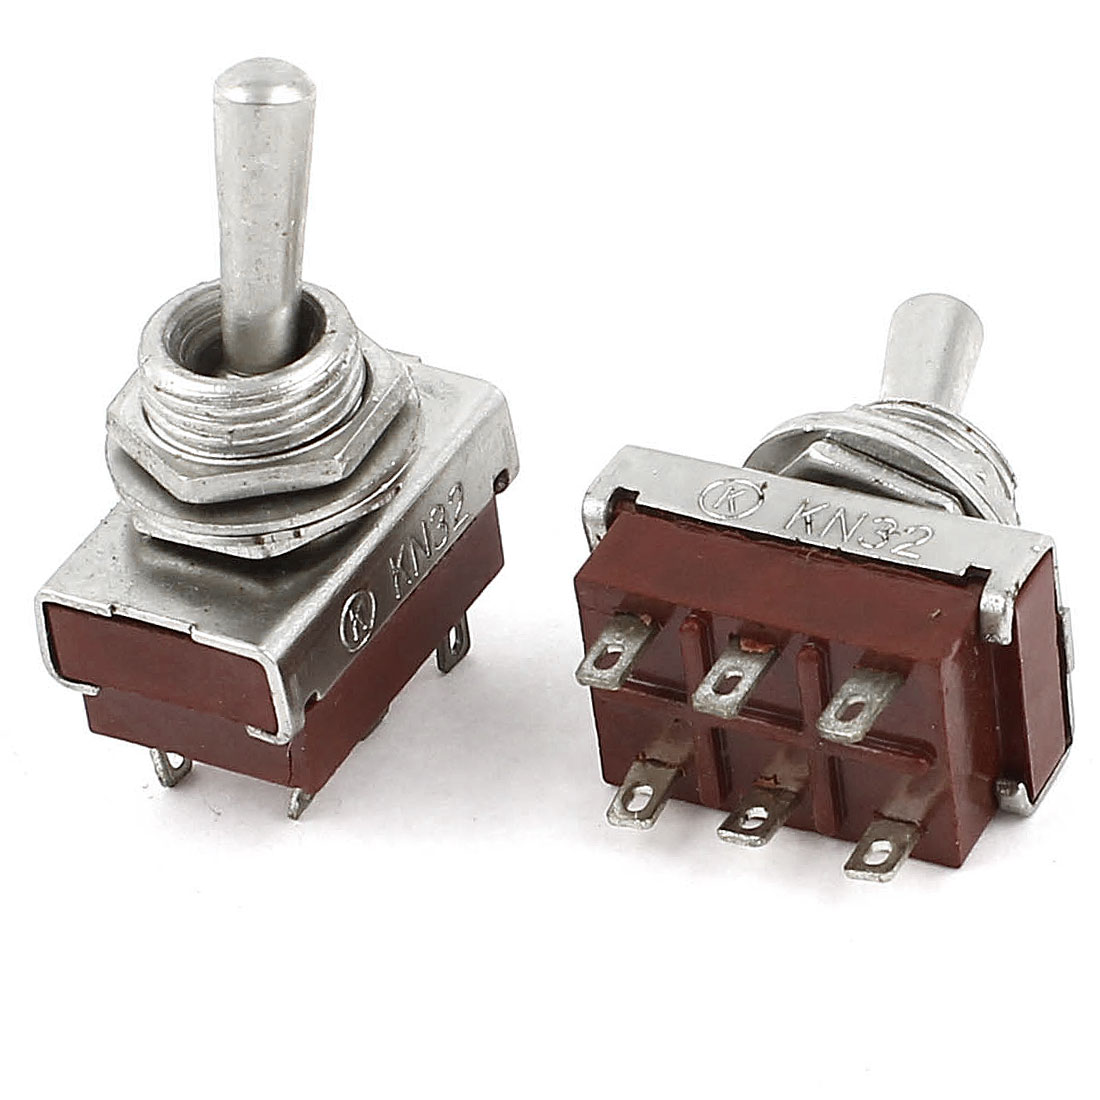 2 Pcs 6 Pin Terminals DPDT 2 Positions On Off Toggle Switches AC 250V 5A